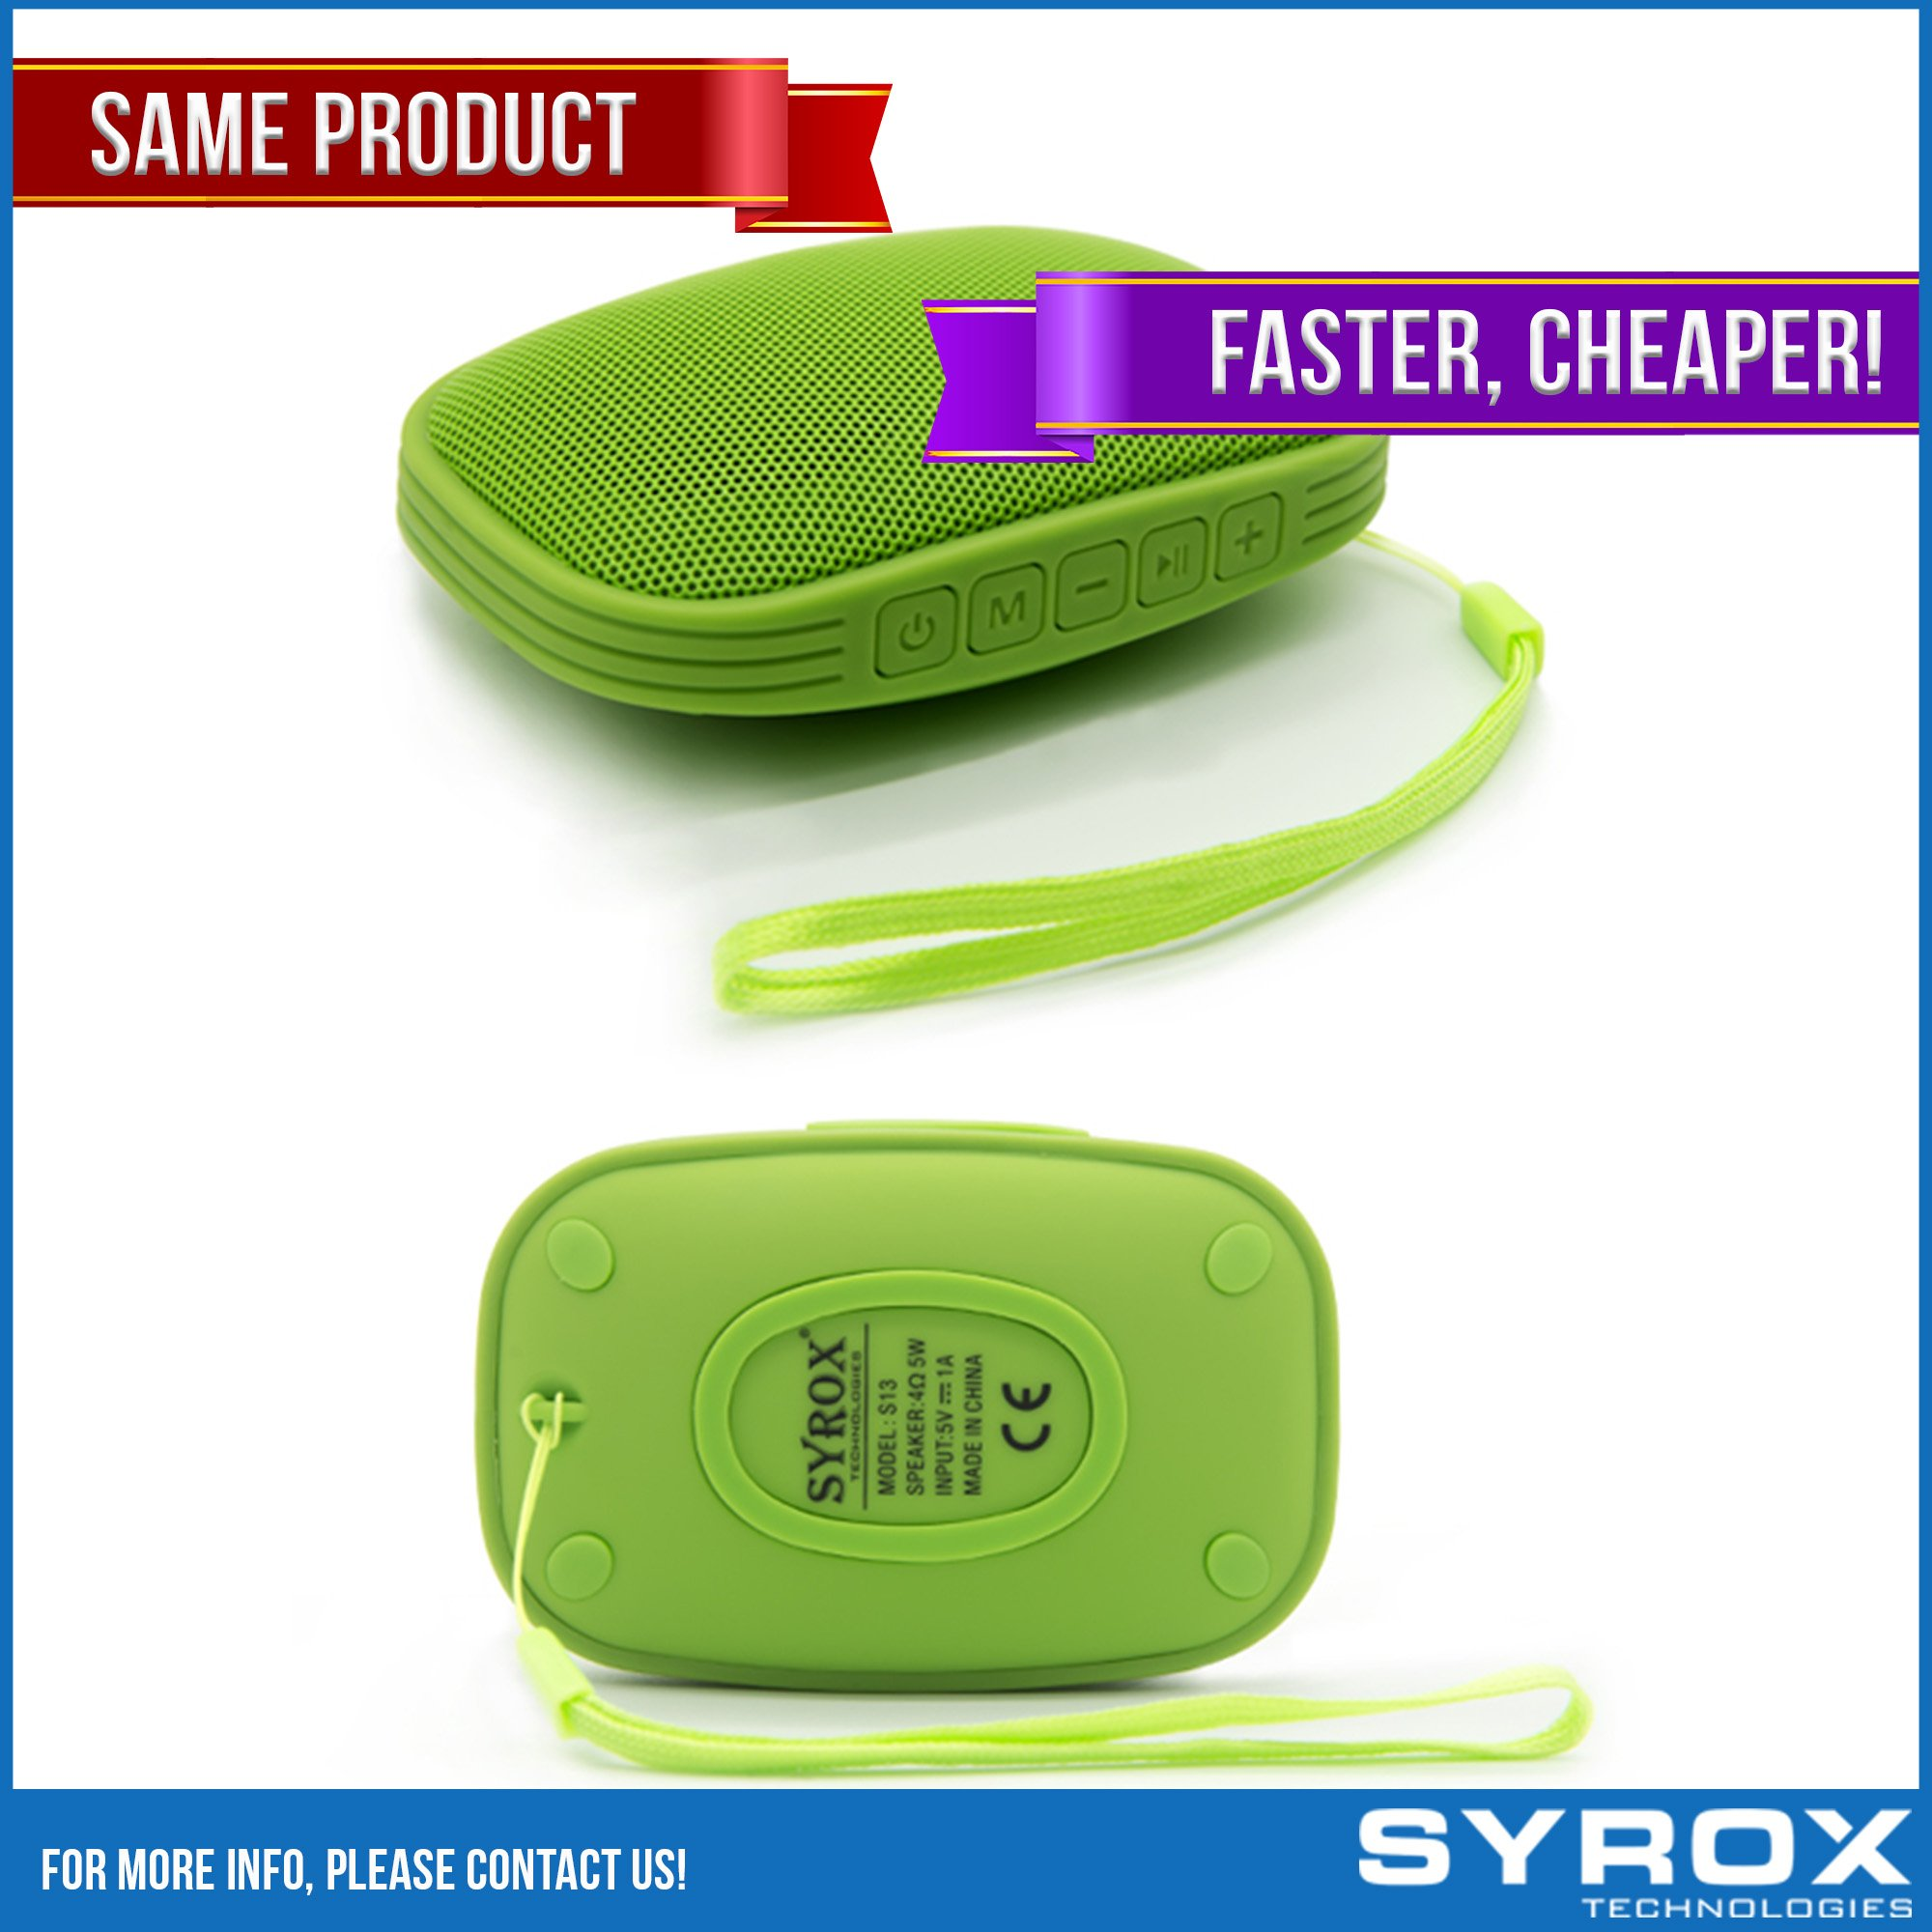 Bluetooth Speaker Waterproof - Green Portable Chargable SD Card AUX FM Radio Microphone Apple Iphone 4/5/6/7/8/X Samsung Galaxy Sony Xperia Xiaomi Asus LG G4 G5 G6 Nokia HTC BlackBerry Motorola Huawei